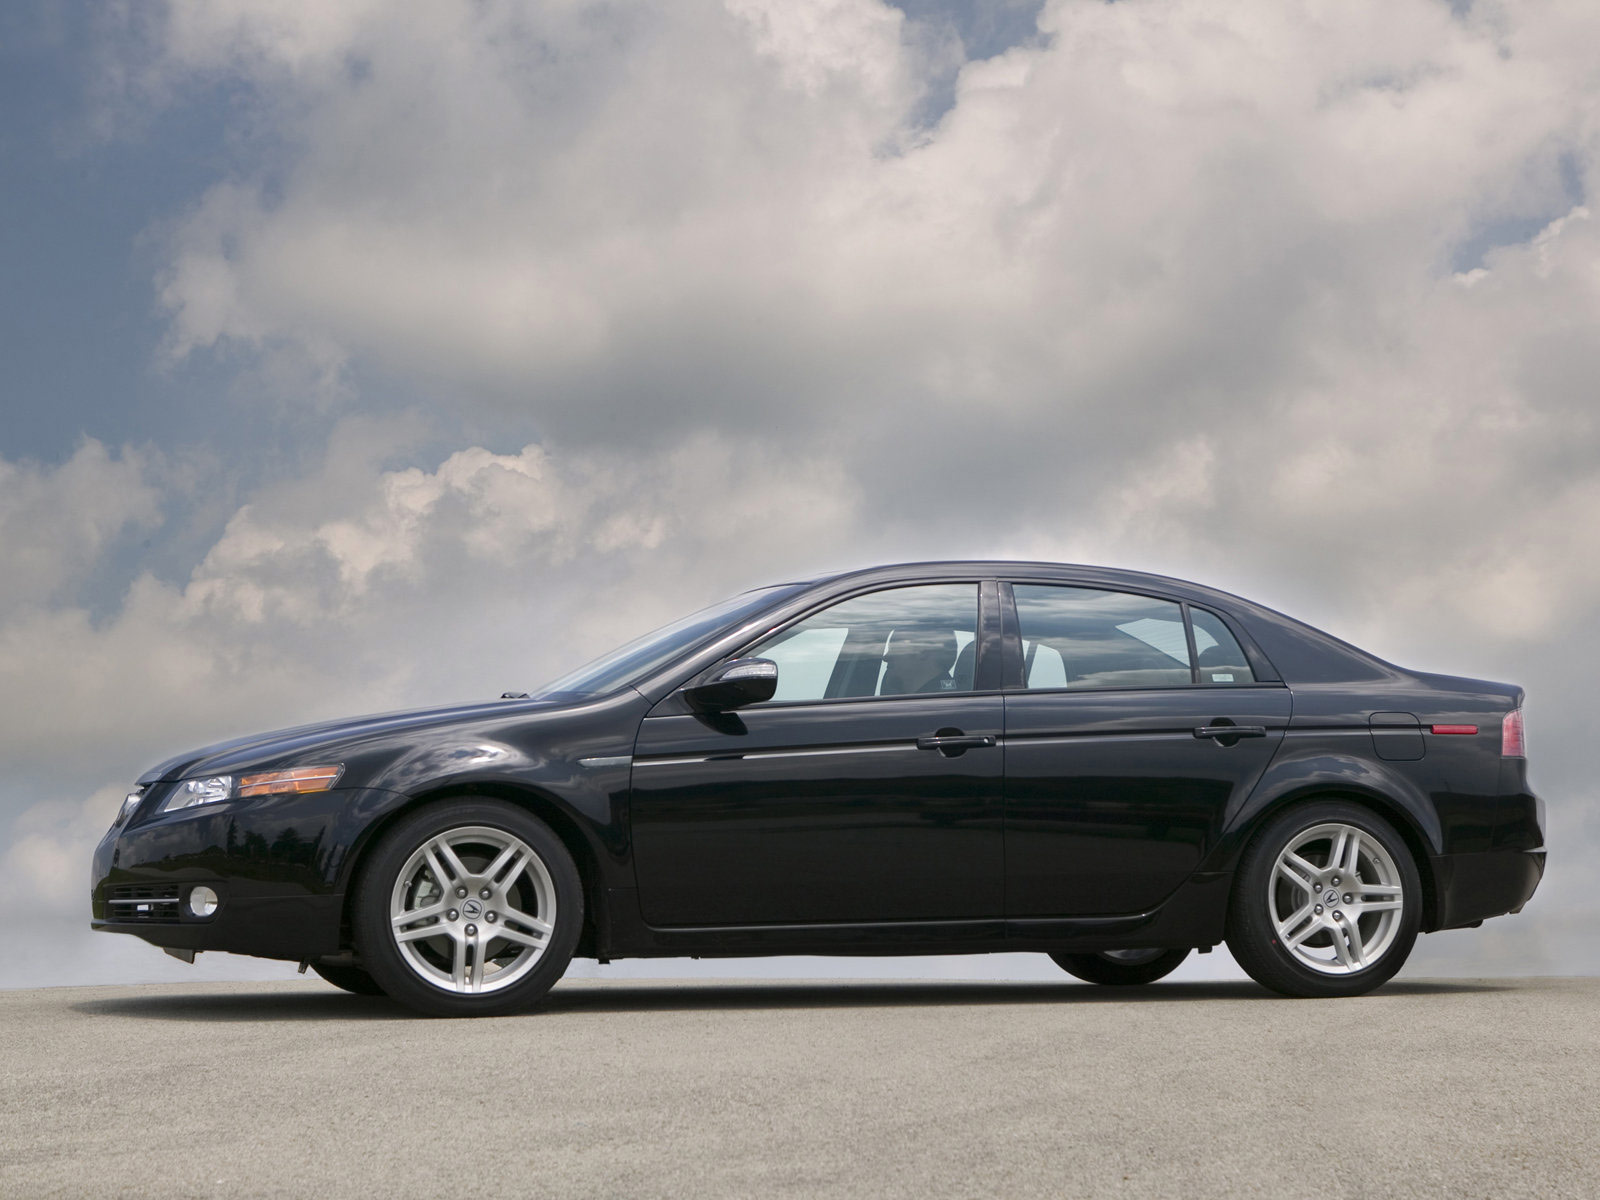 2007 Acura Tl Japanese Car Wallpapers Coupe - Medium